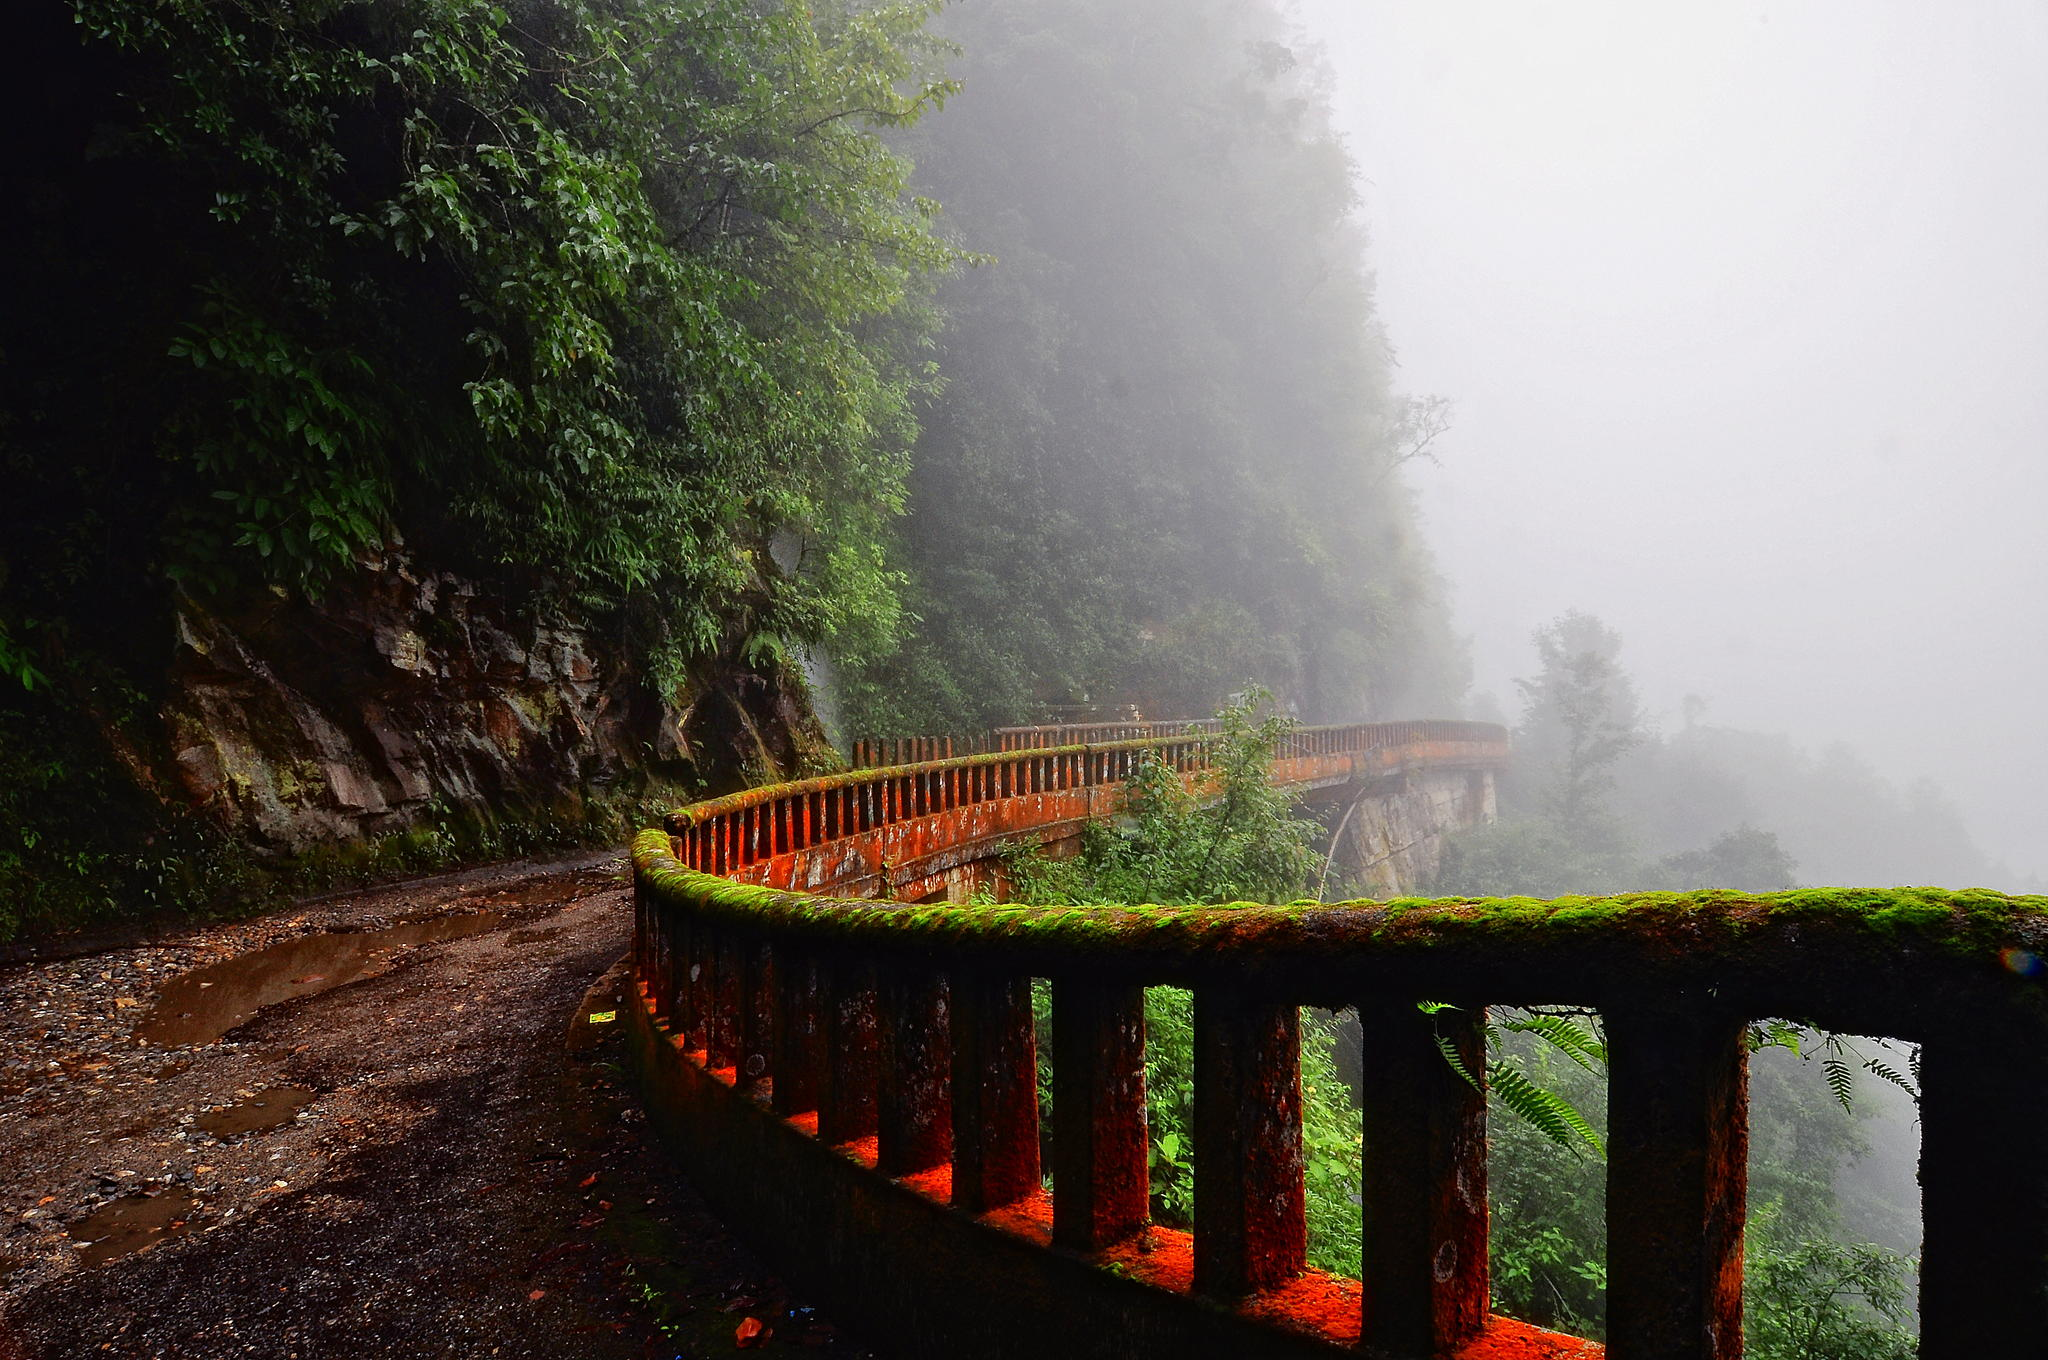 500px / From here to eternity-somewhere near Darjeeling by tabrez ahmad